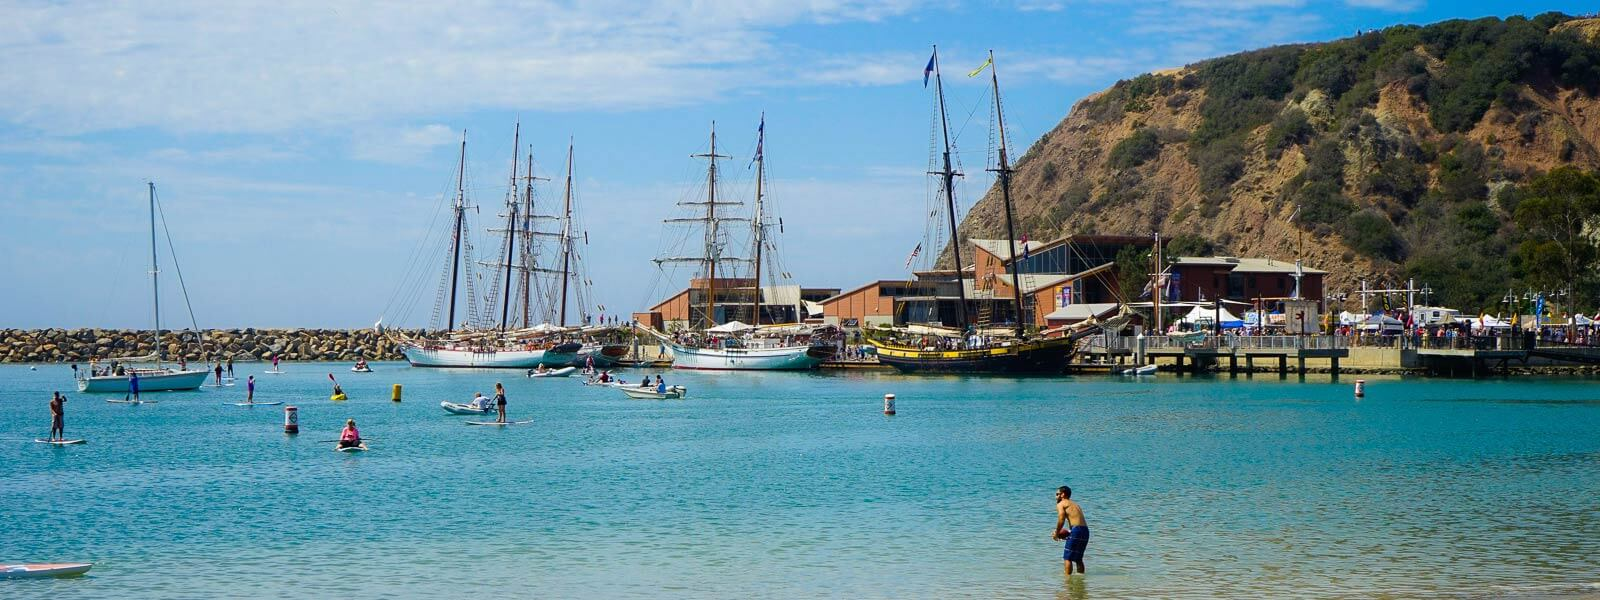 Tall Ships Festival at Dana Point